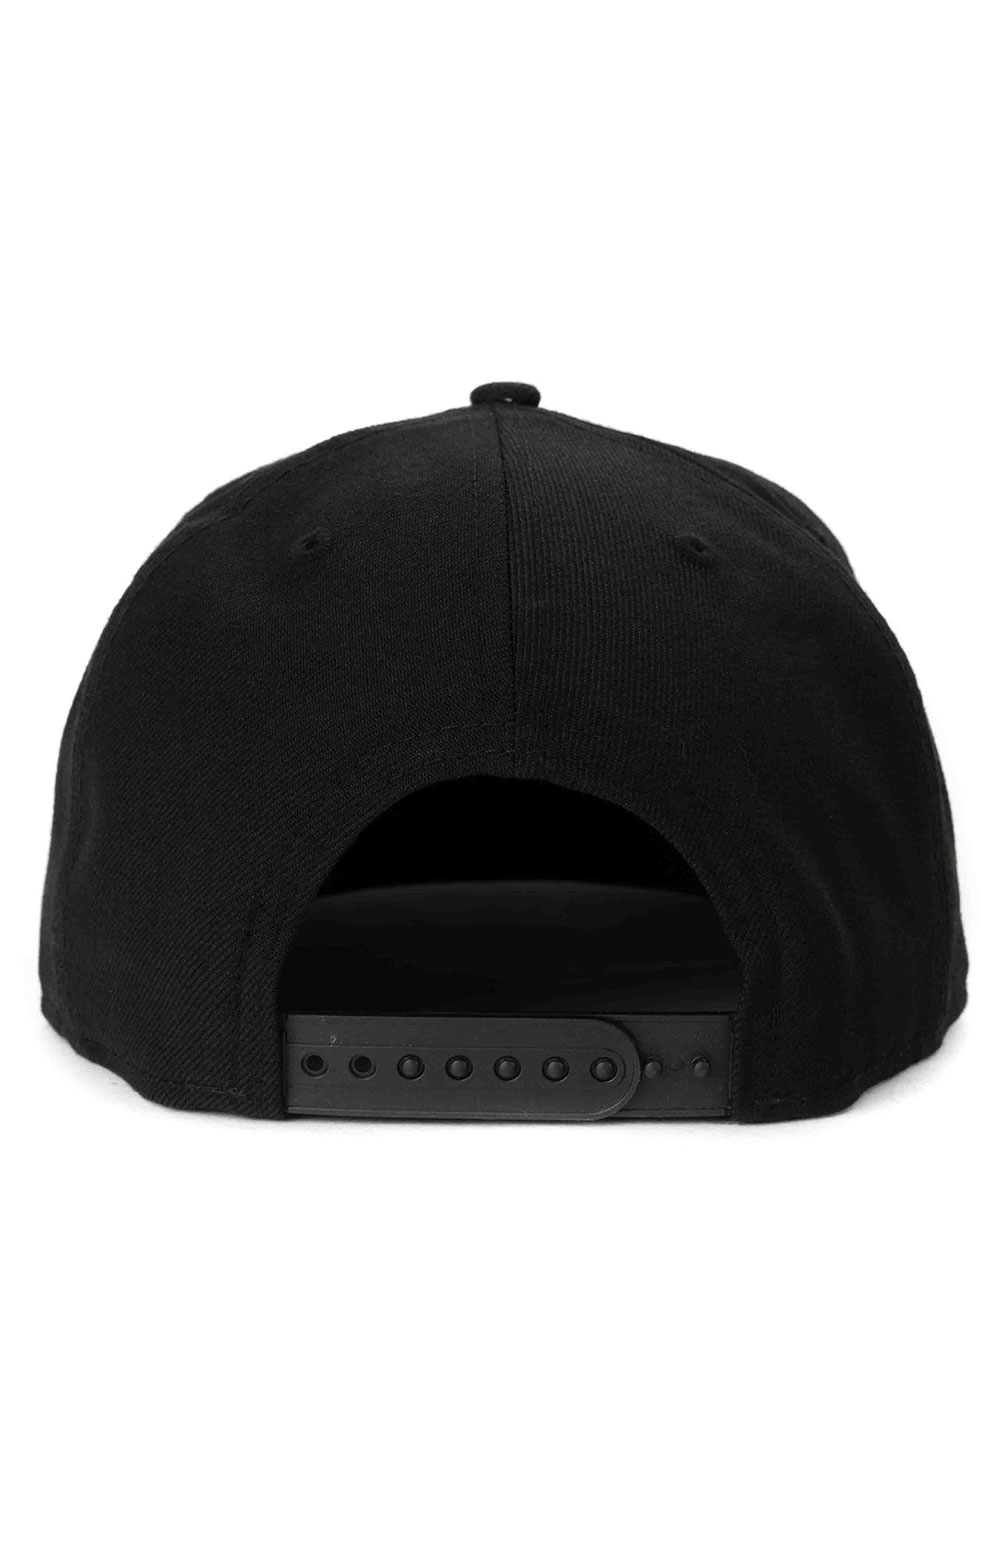 SF Giants Paisley Elements 9Fifty Snap-Back Hat - Black 4